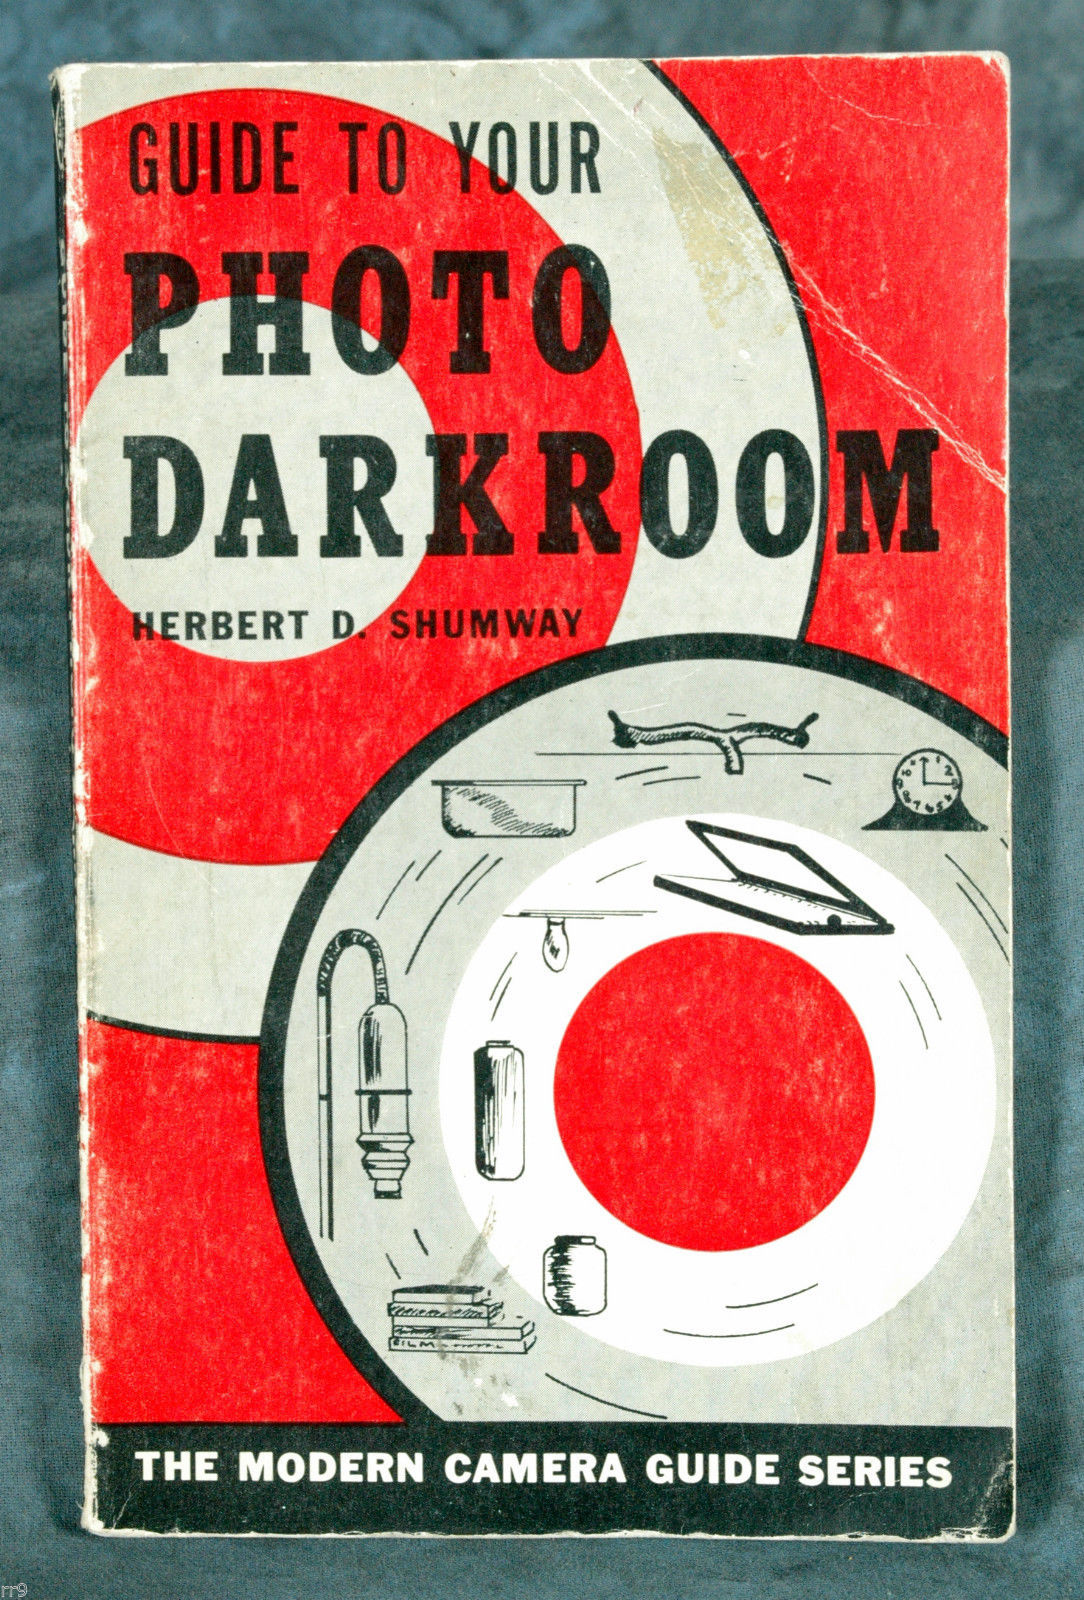 Primary image for Guide to Your Photo Darkroom by Herbert D. Shumway